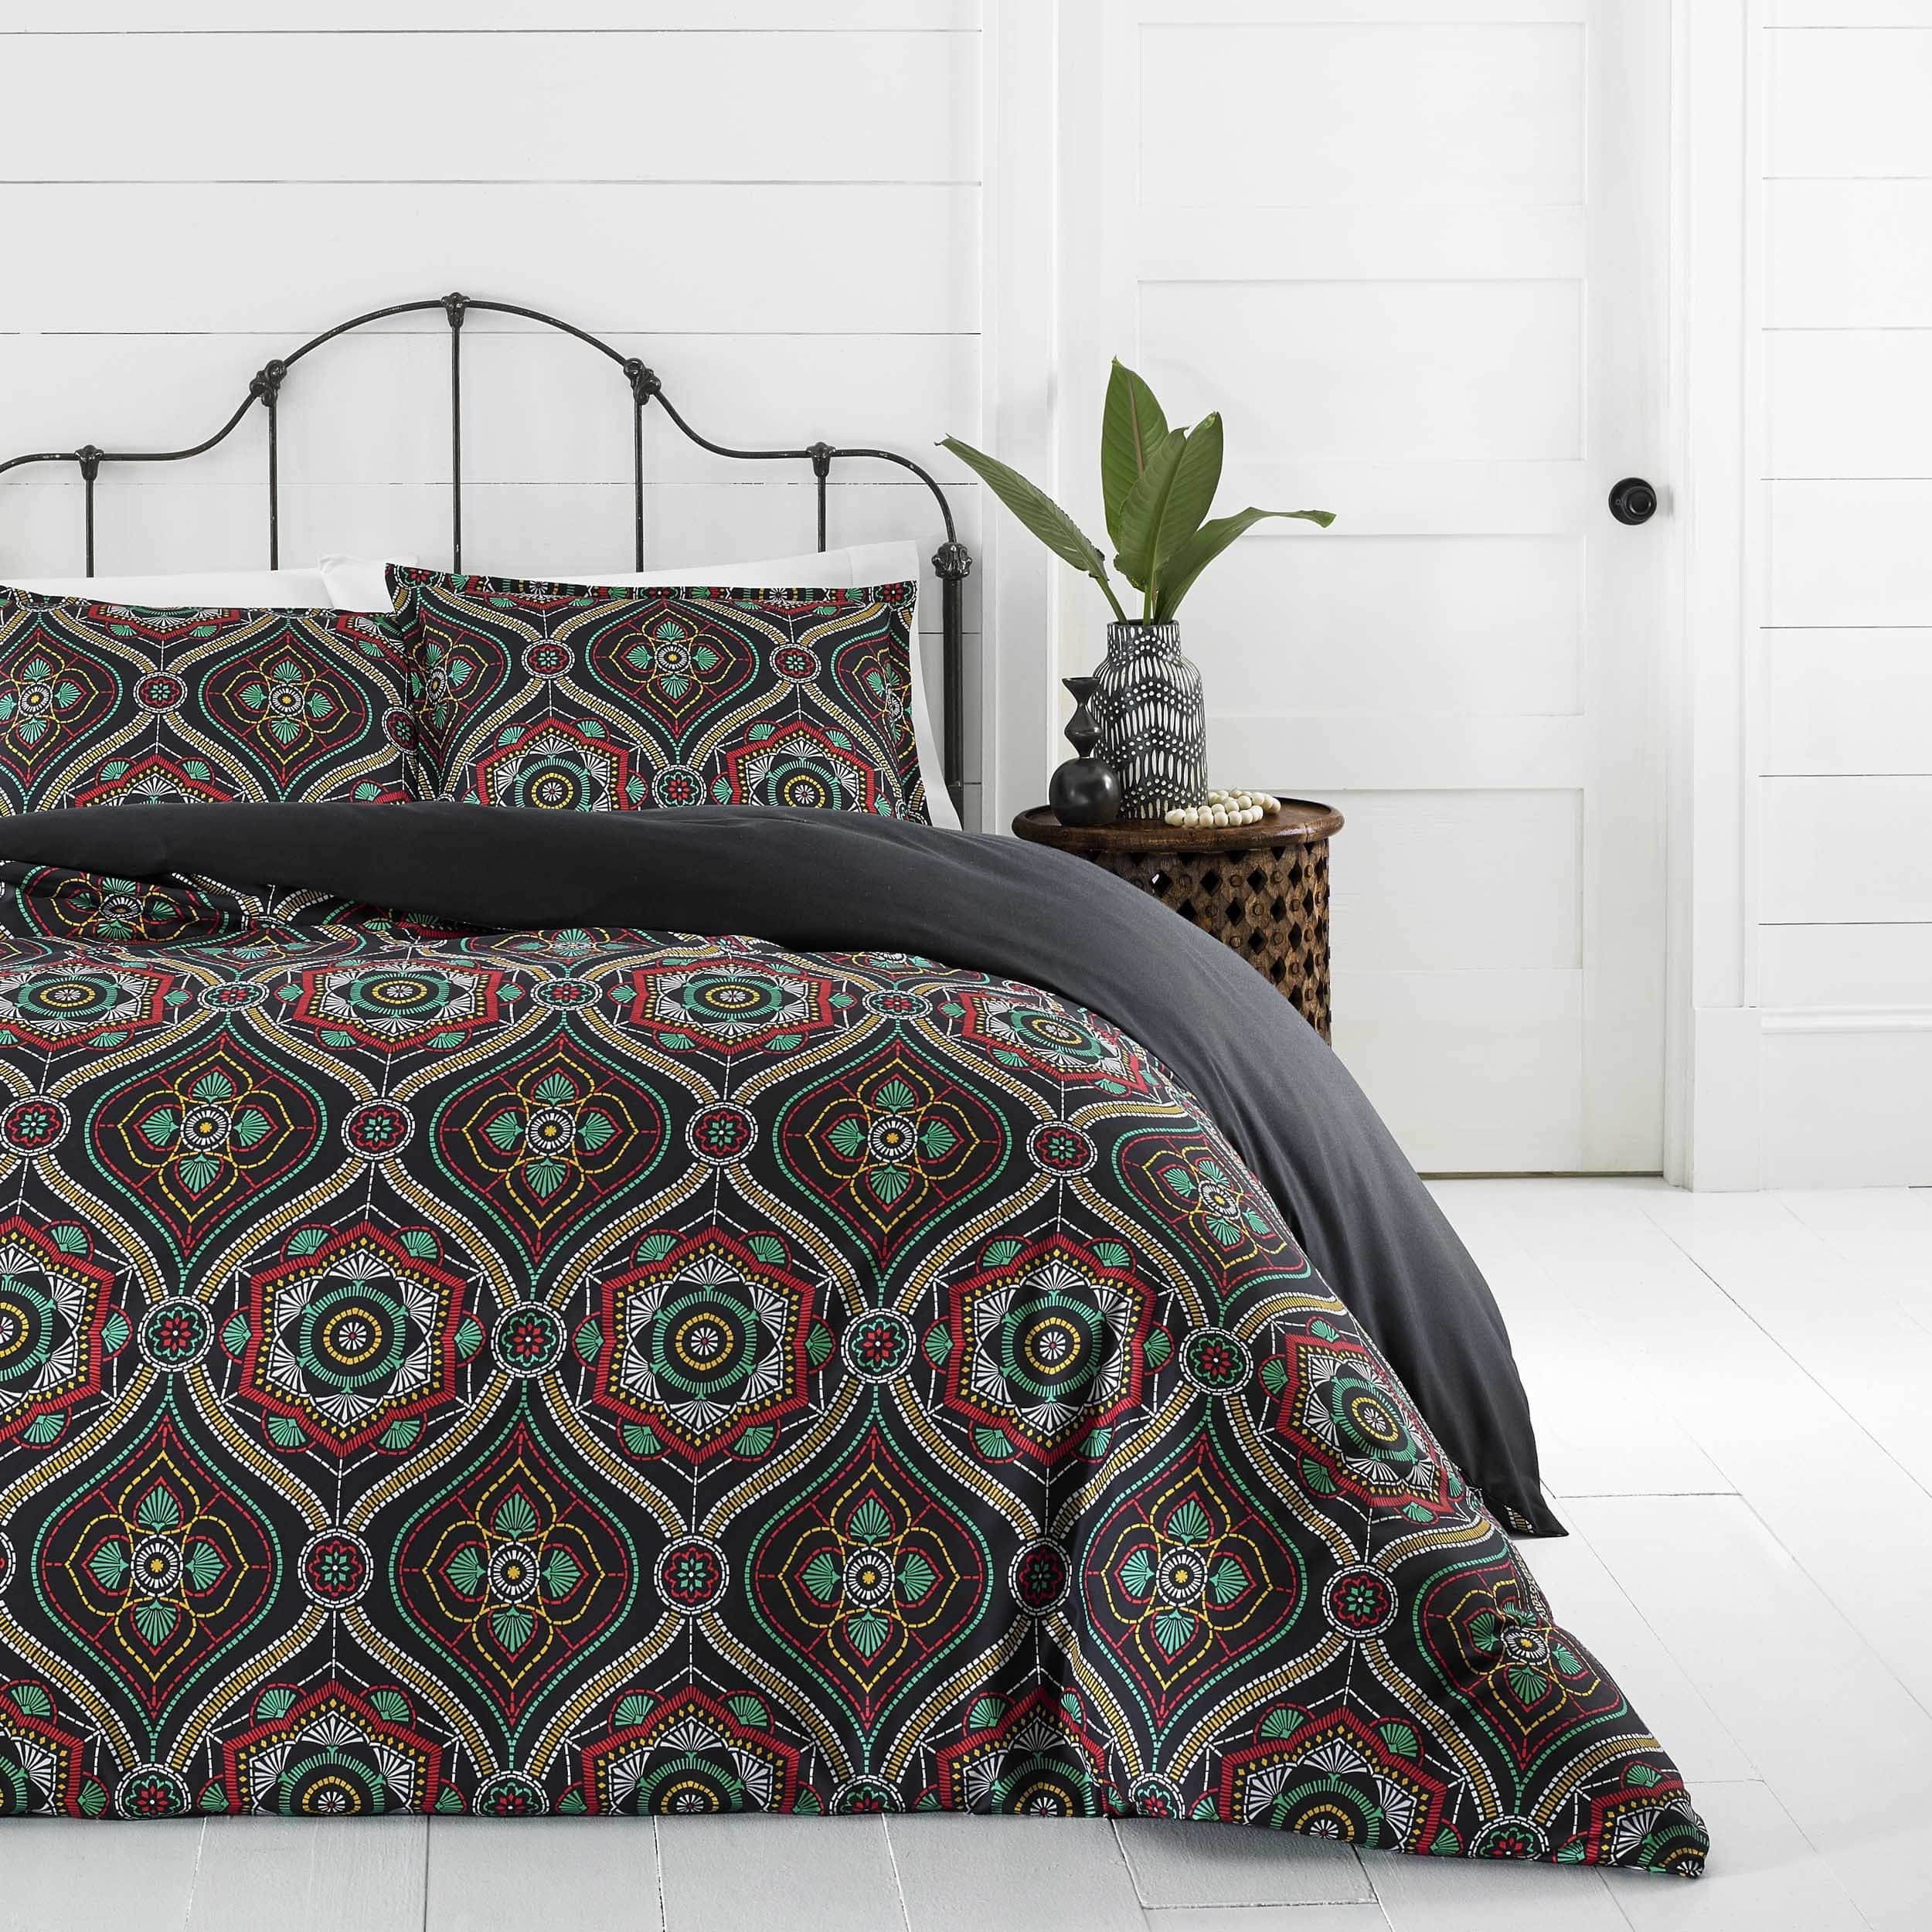 Azalea Skye Nairobi Ogee Multi Duvet Cover Set, Full/Queen